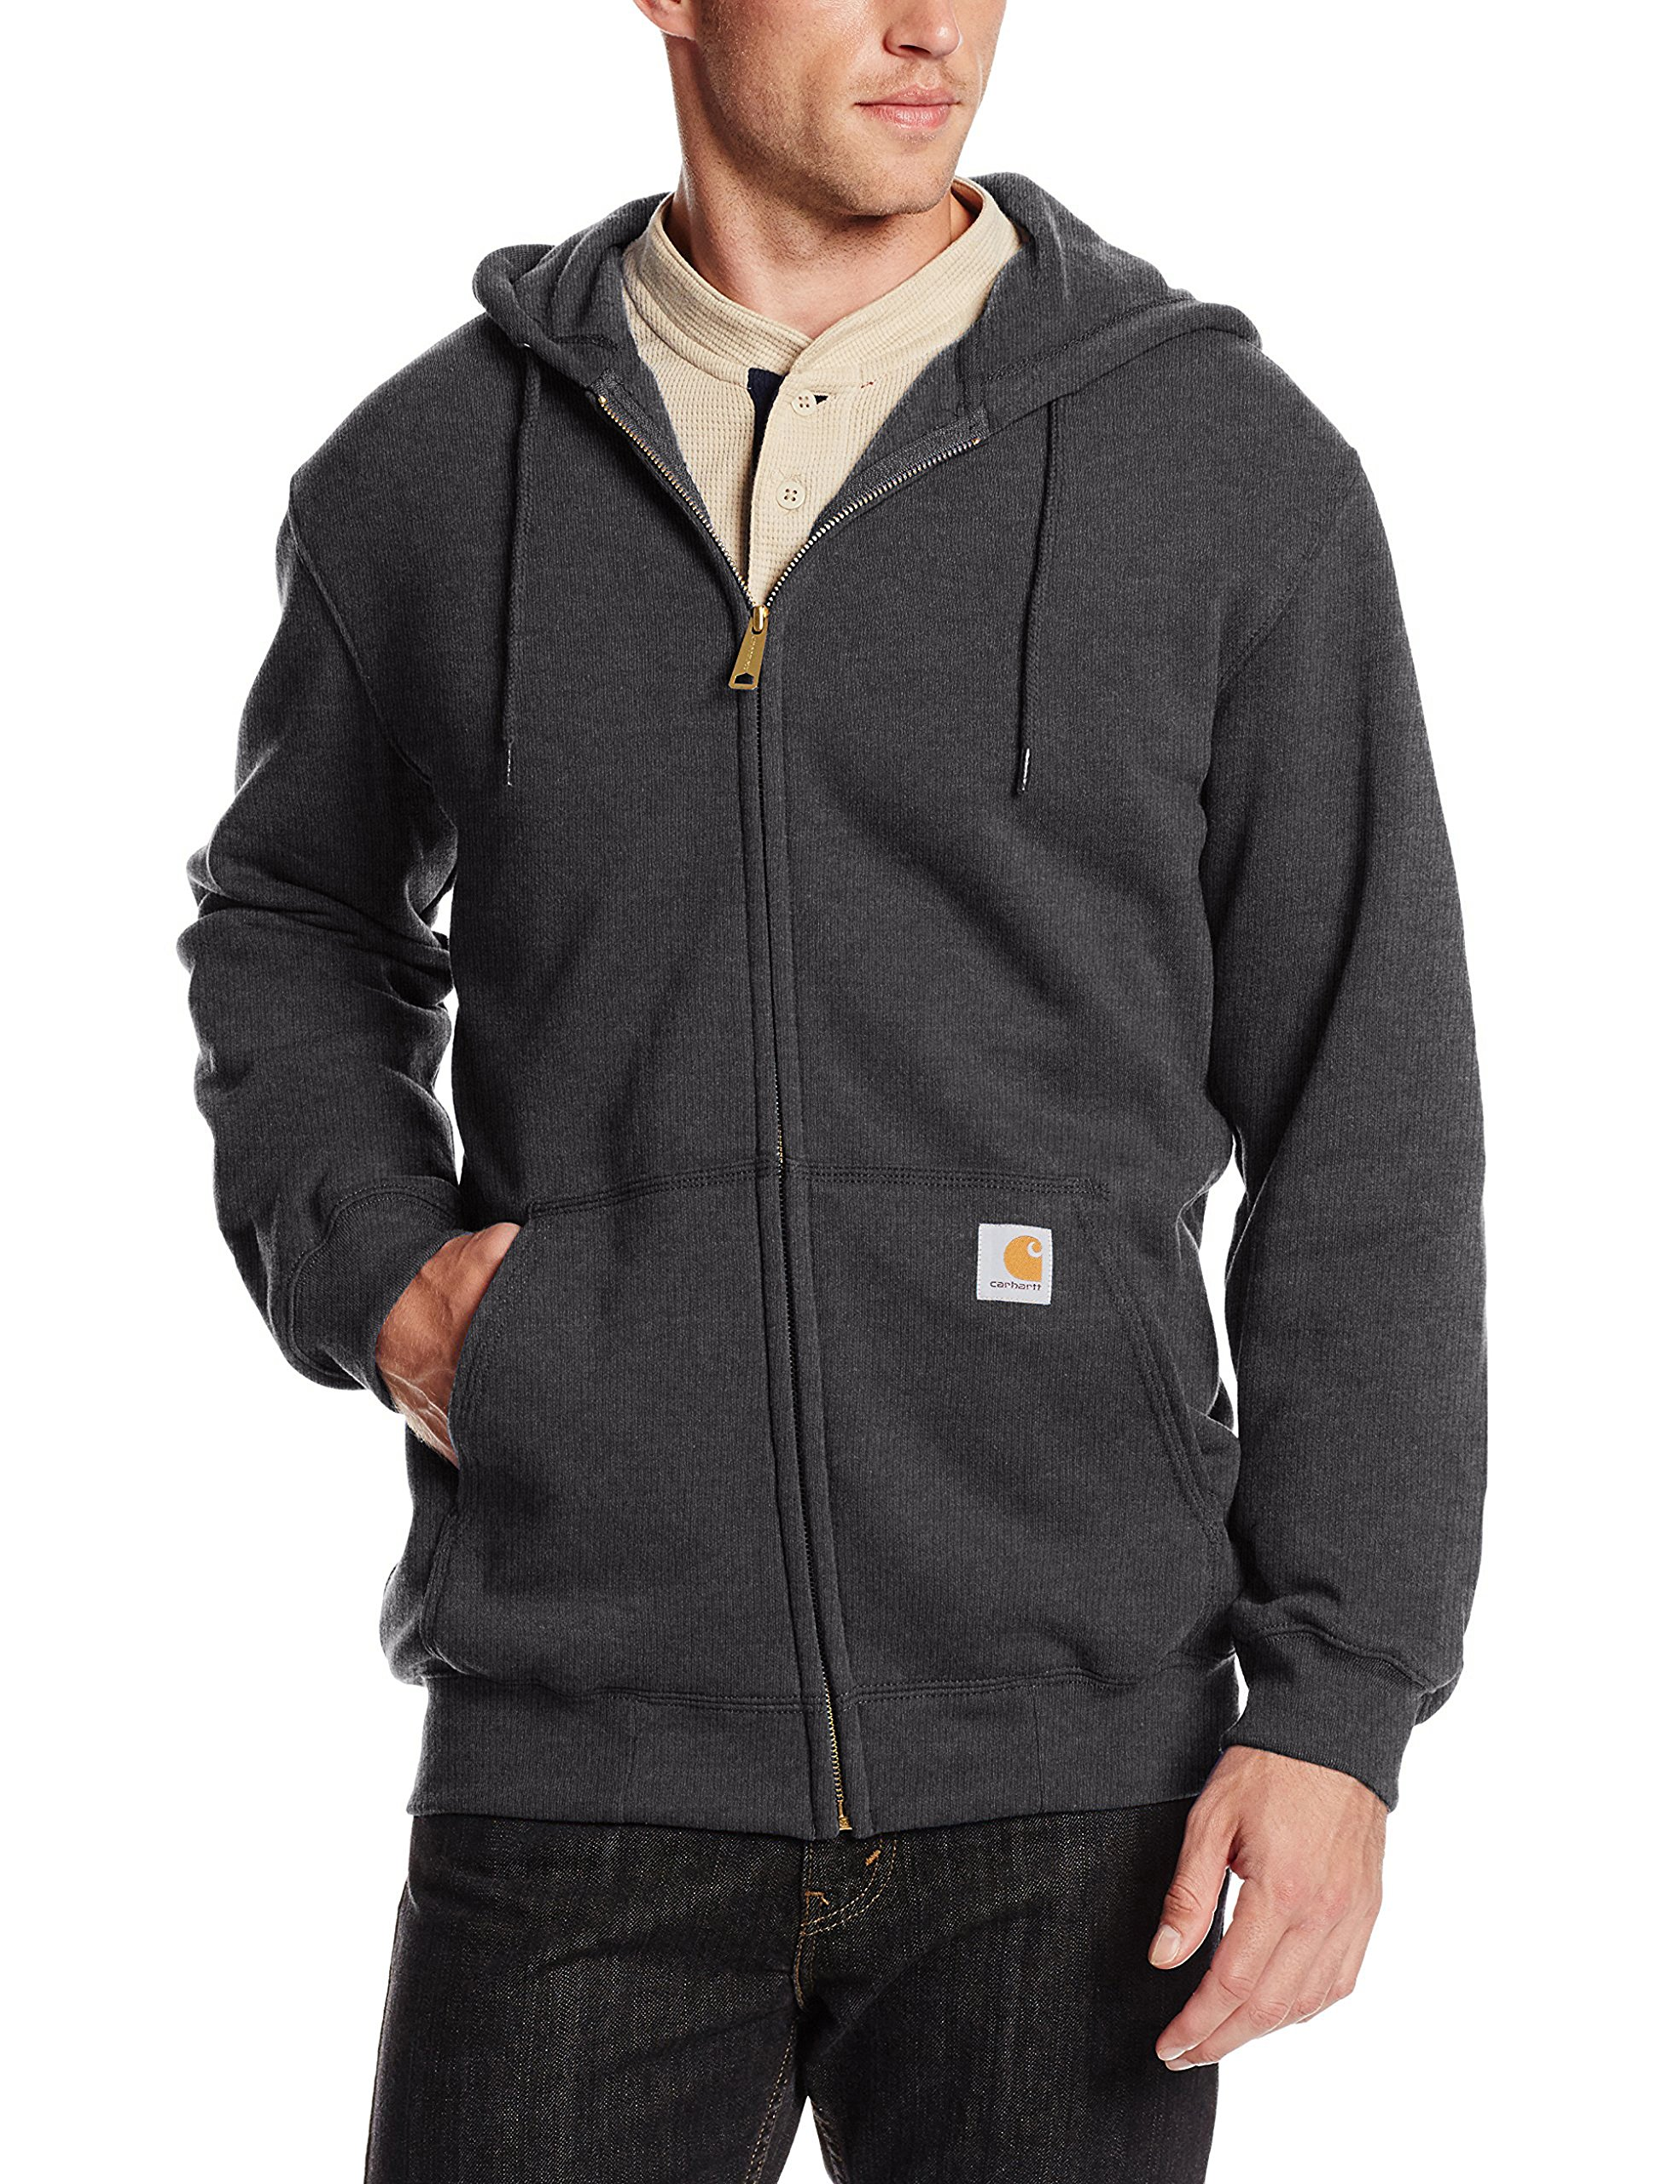 Carhartt Men's Midweight Hooded Zip-front Sweatshirt, Carbon Heather, 2X-Large by Carhartt